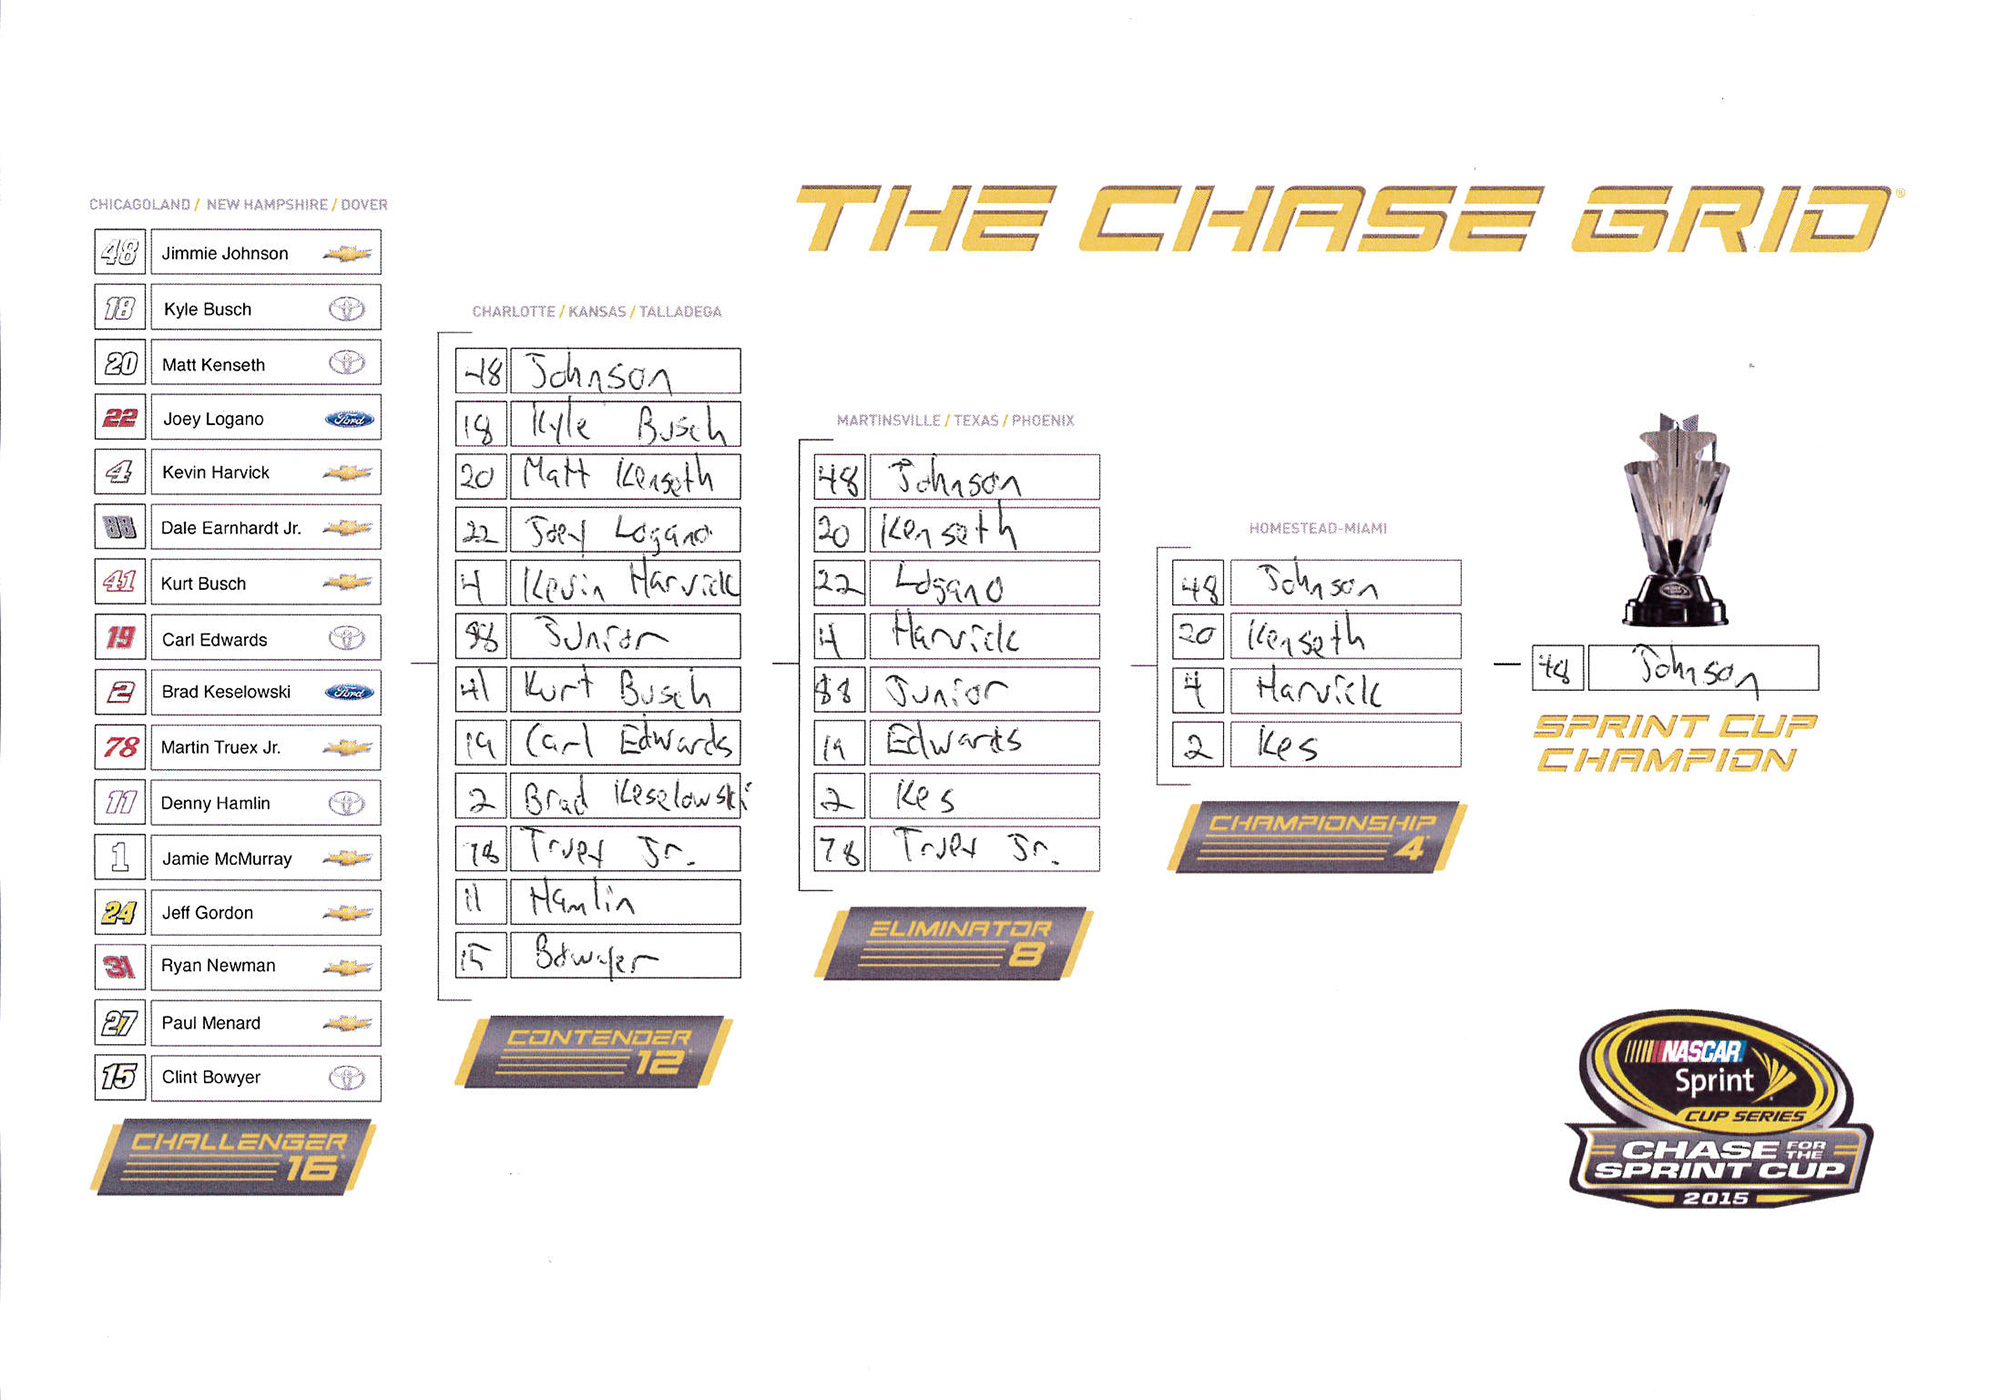 graphic regarding Nascar Chase Grid Printable named personnel Chase predictions Formal Website Of NASCAR